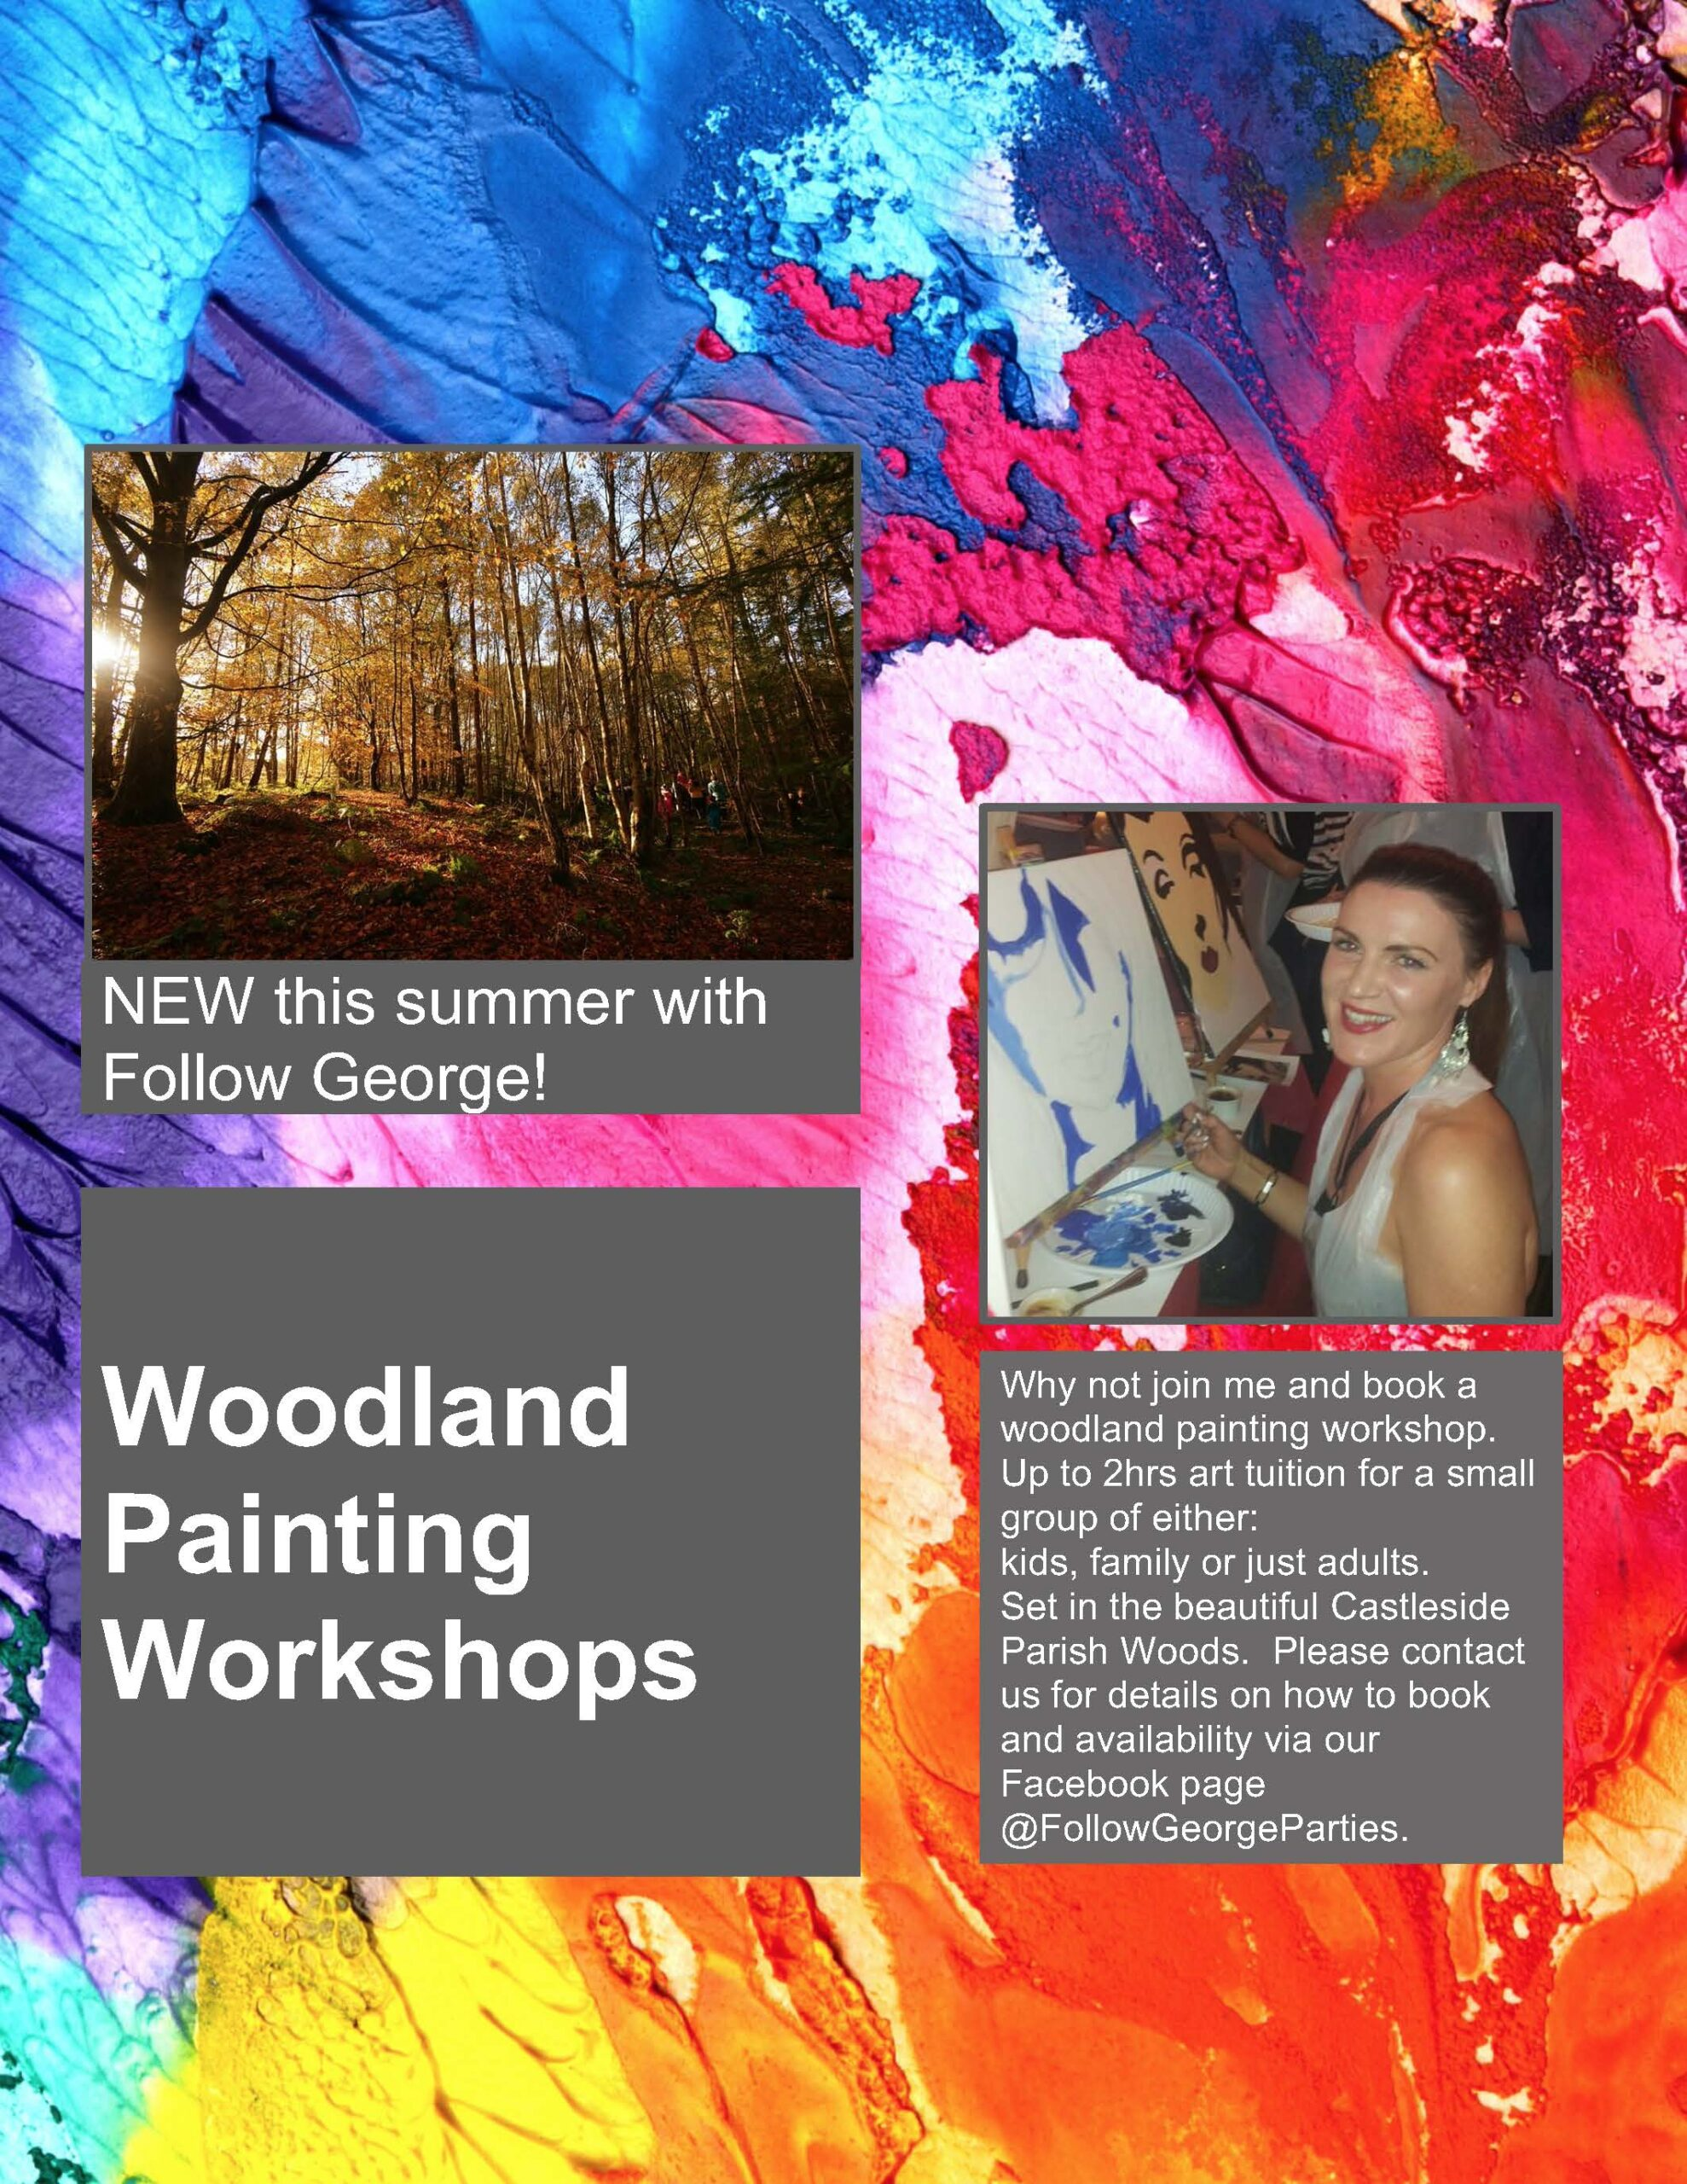 Follow George, Woodland Painting Workshops